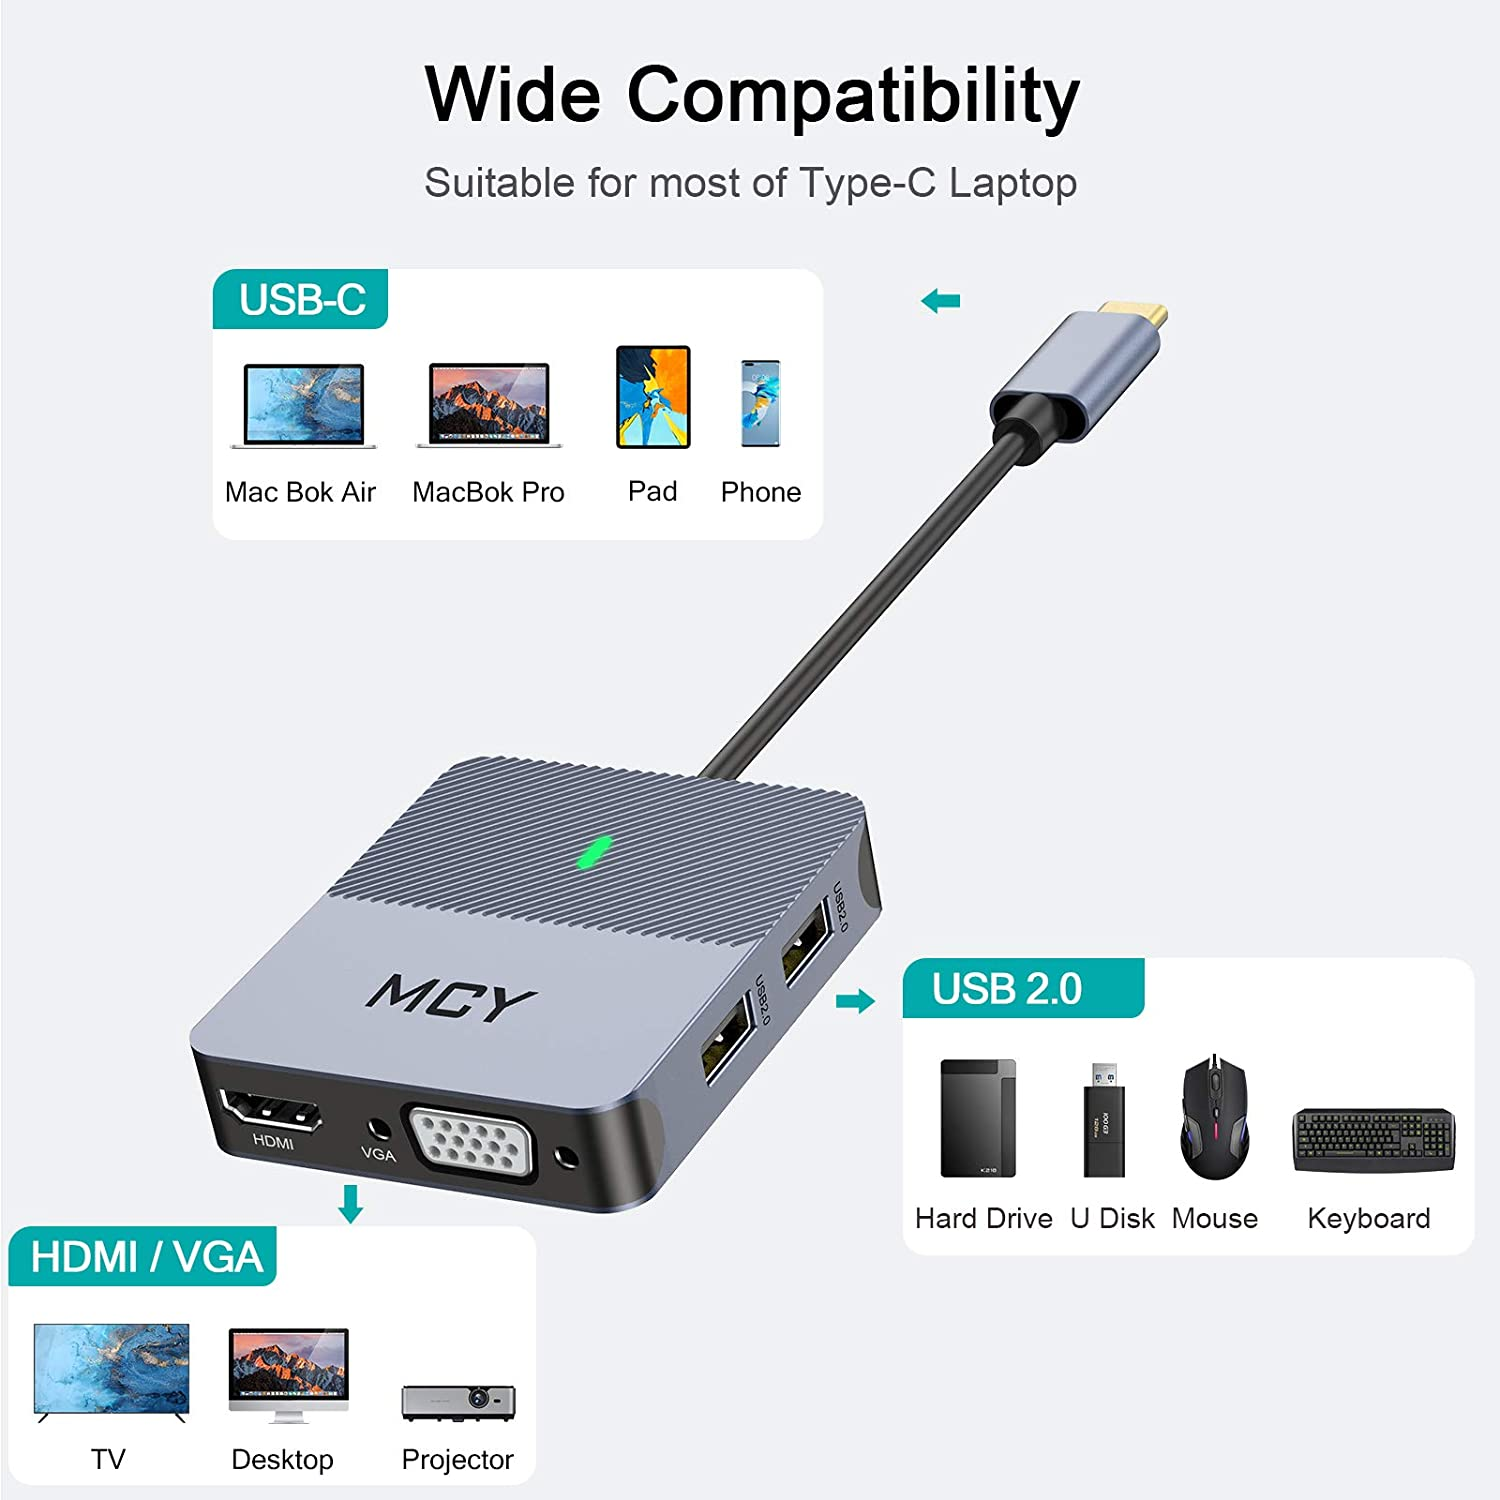 SD//TF Card Reader Compatible with MacBook Pro MCY 6 in 1 Portable Type C Dongle Thunderbolt 3 to HDMI 4K USB C to HDMI VGA Multiptort Adapter XPS More Type C Devices VGA 2 USB 2.0 Ports